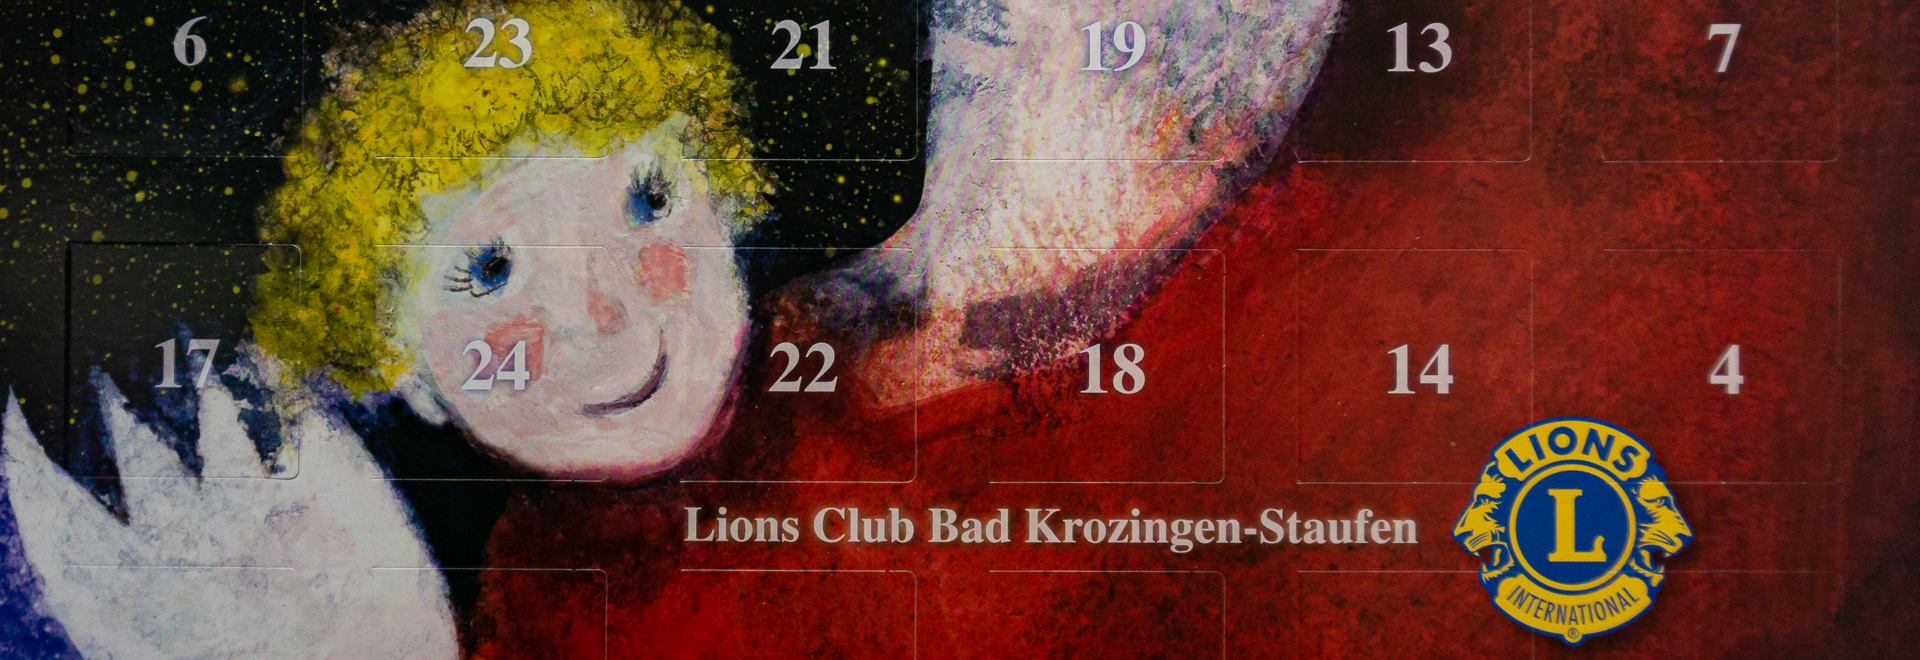 Lions Club Adventskalender 2019